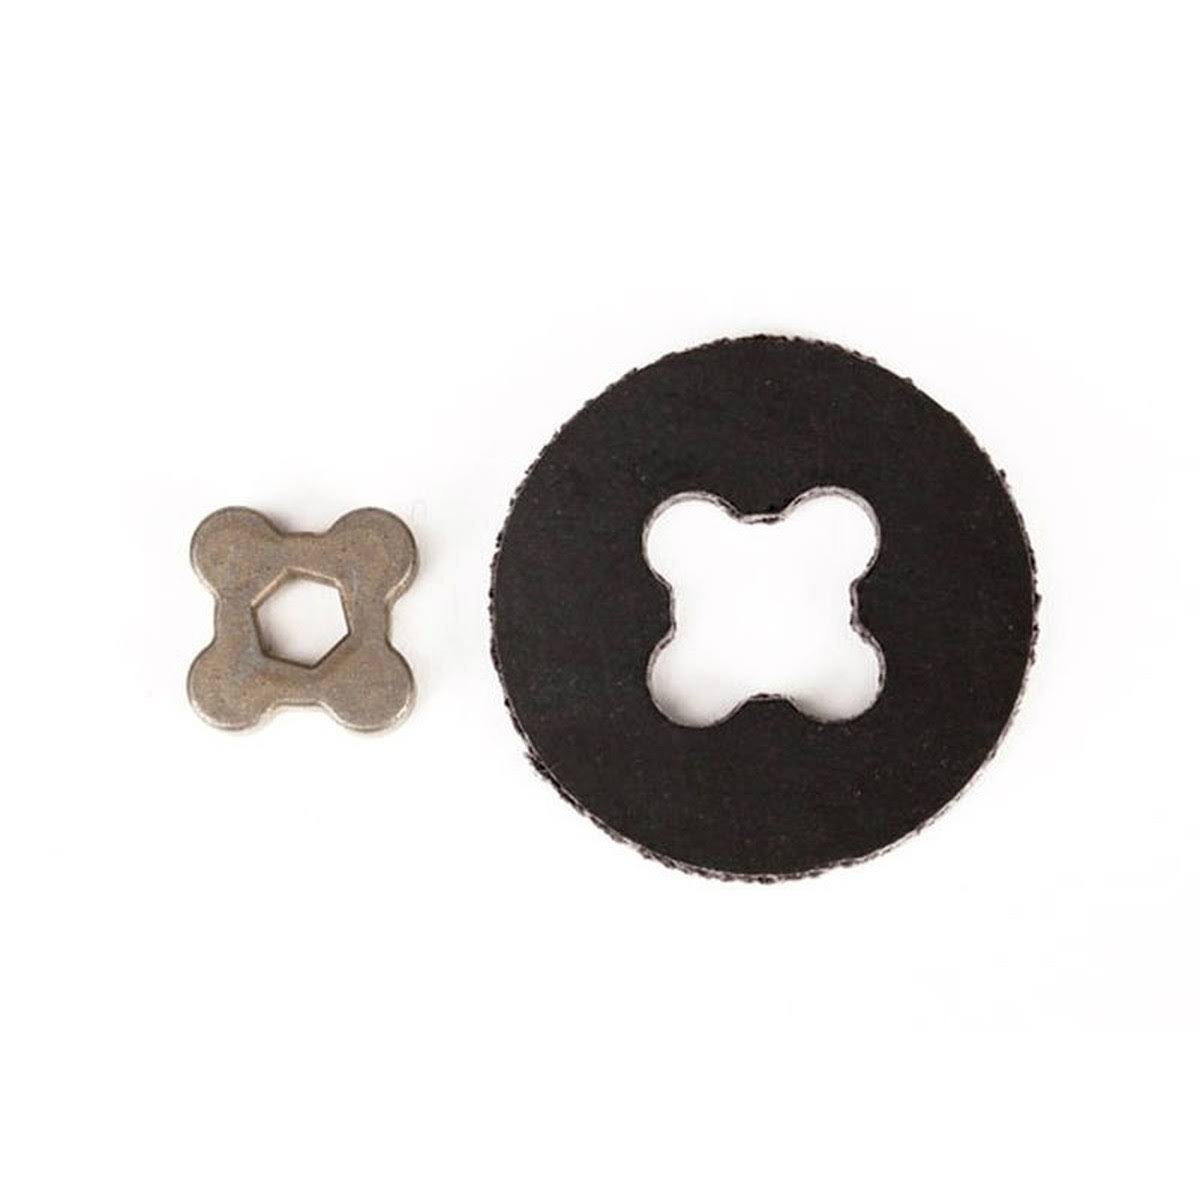 Traxxas Tra4464 Brake Disc Brake Adapter - Nitro Slash